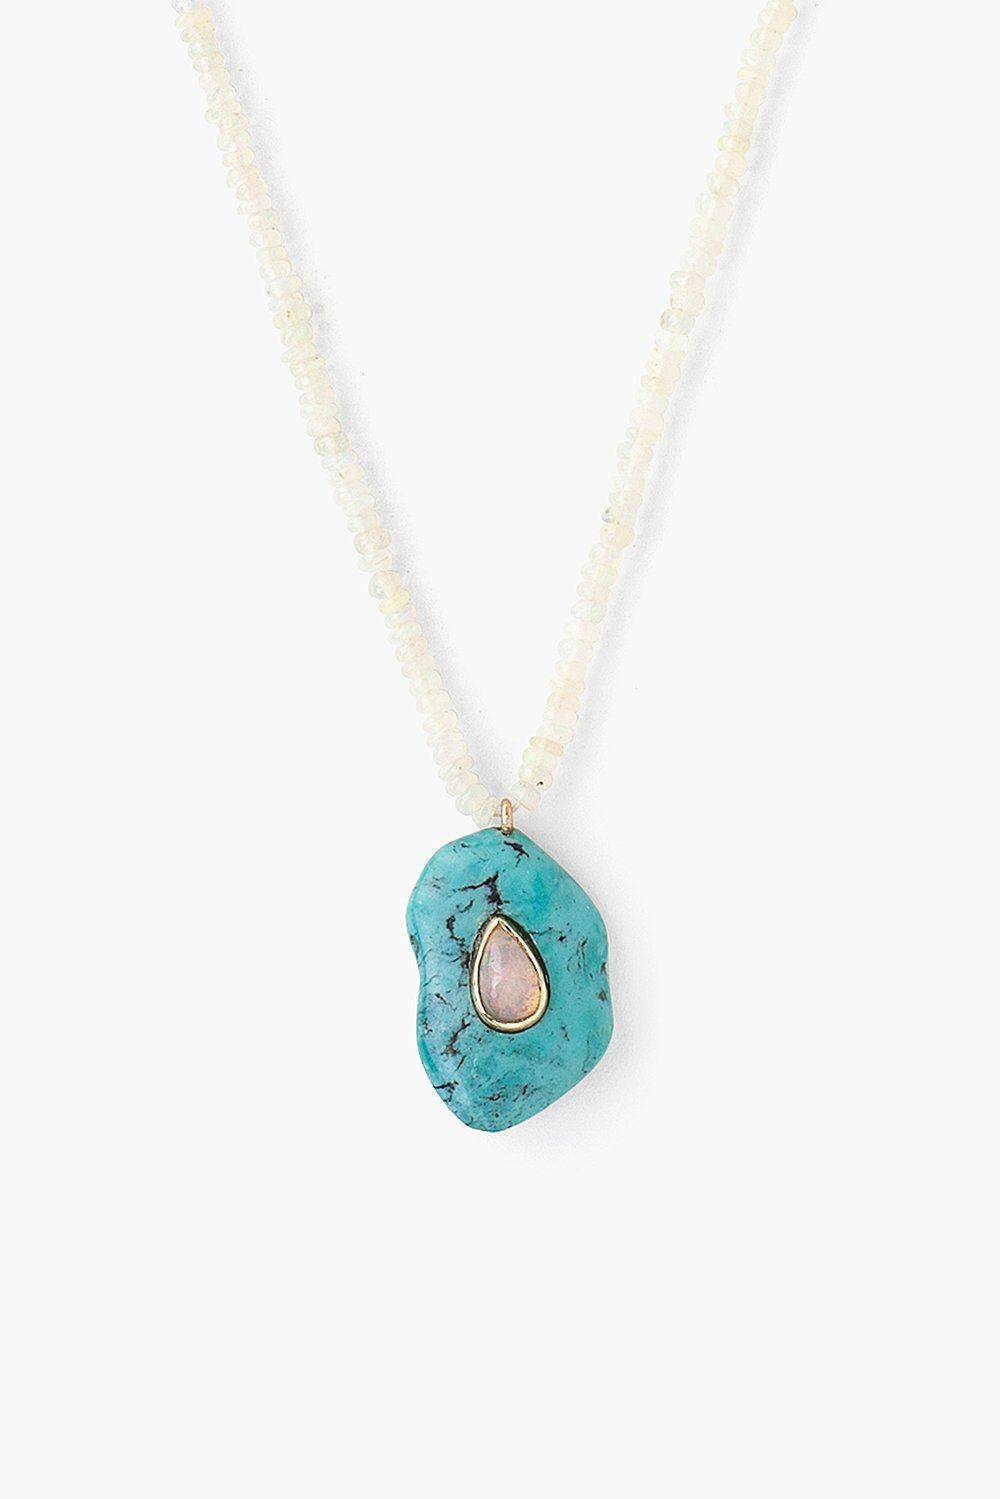 14k White Opal and Turquoise Pendant Necklace